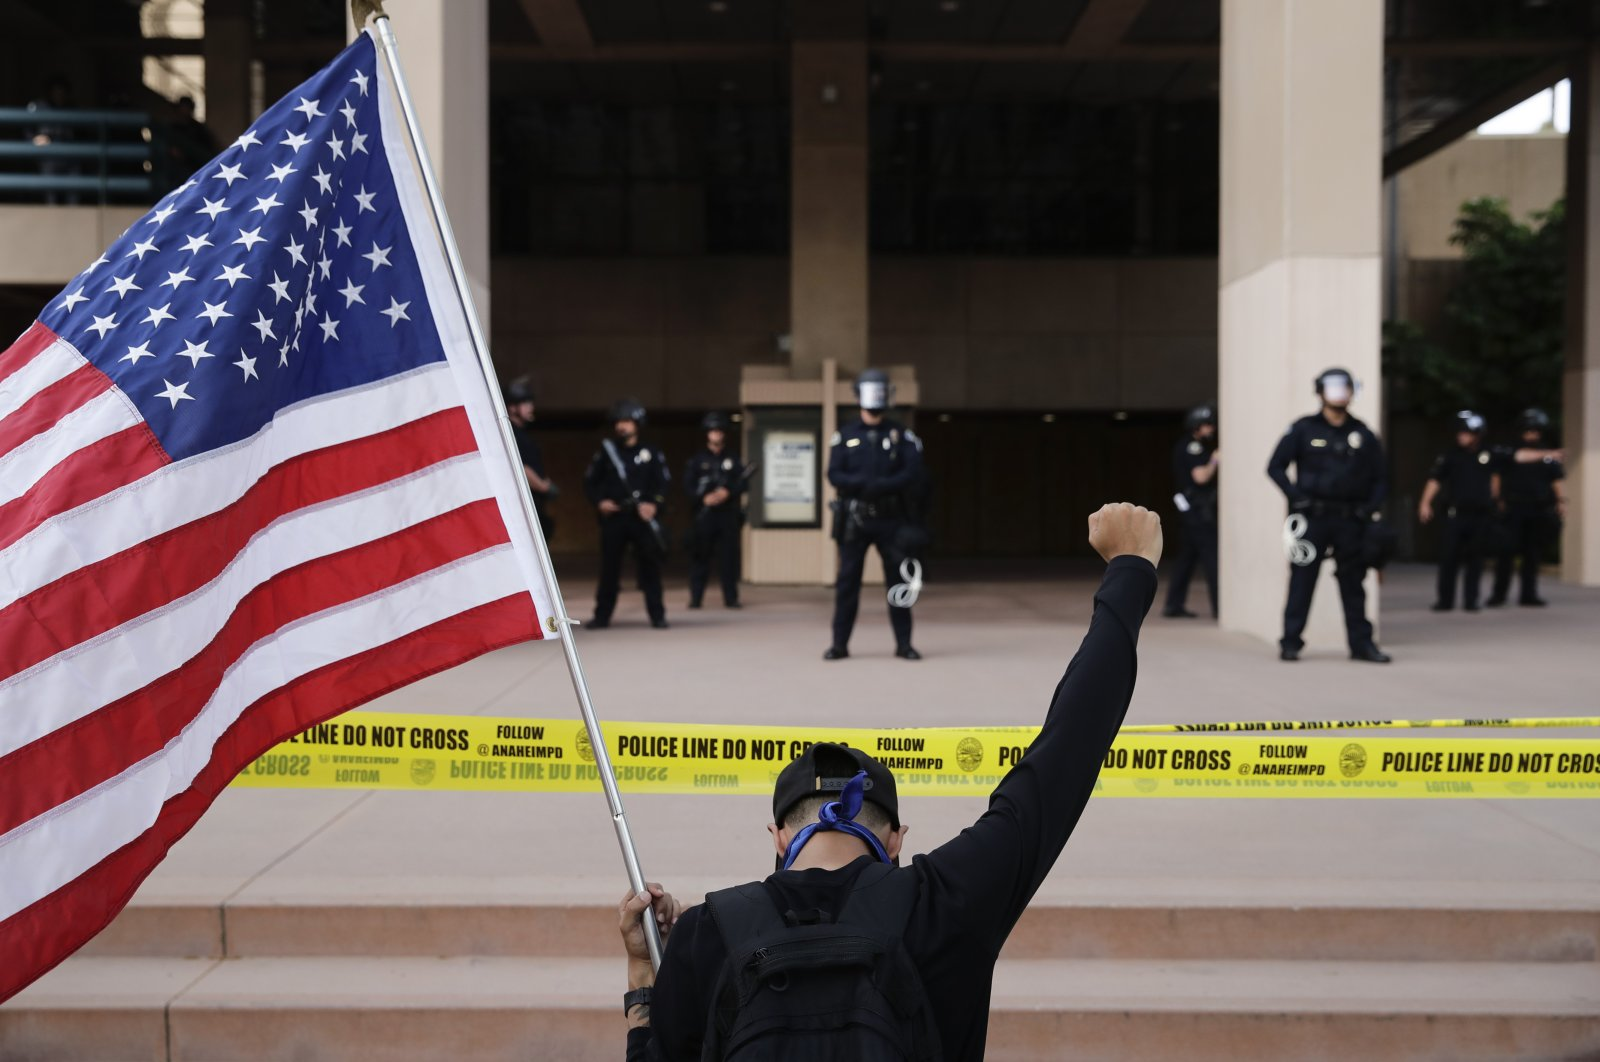 A demonstrator holds up his fist while kneeling before police officers during a protest over the death of George Floyd, Anaheim, Calif., June 1, 2020. (AP Photo)